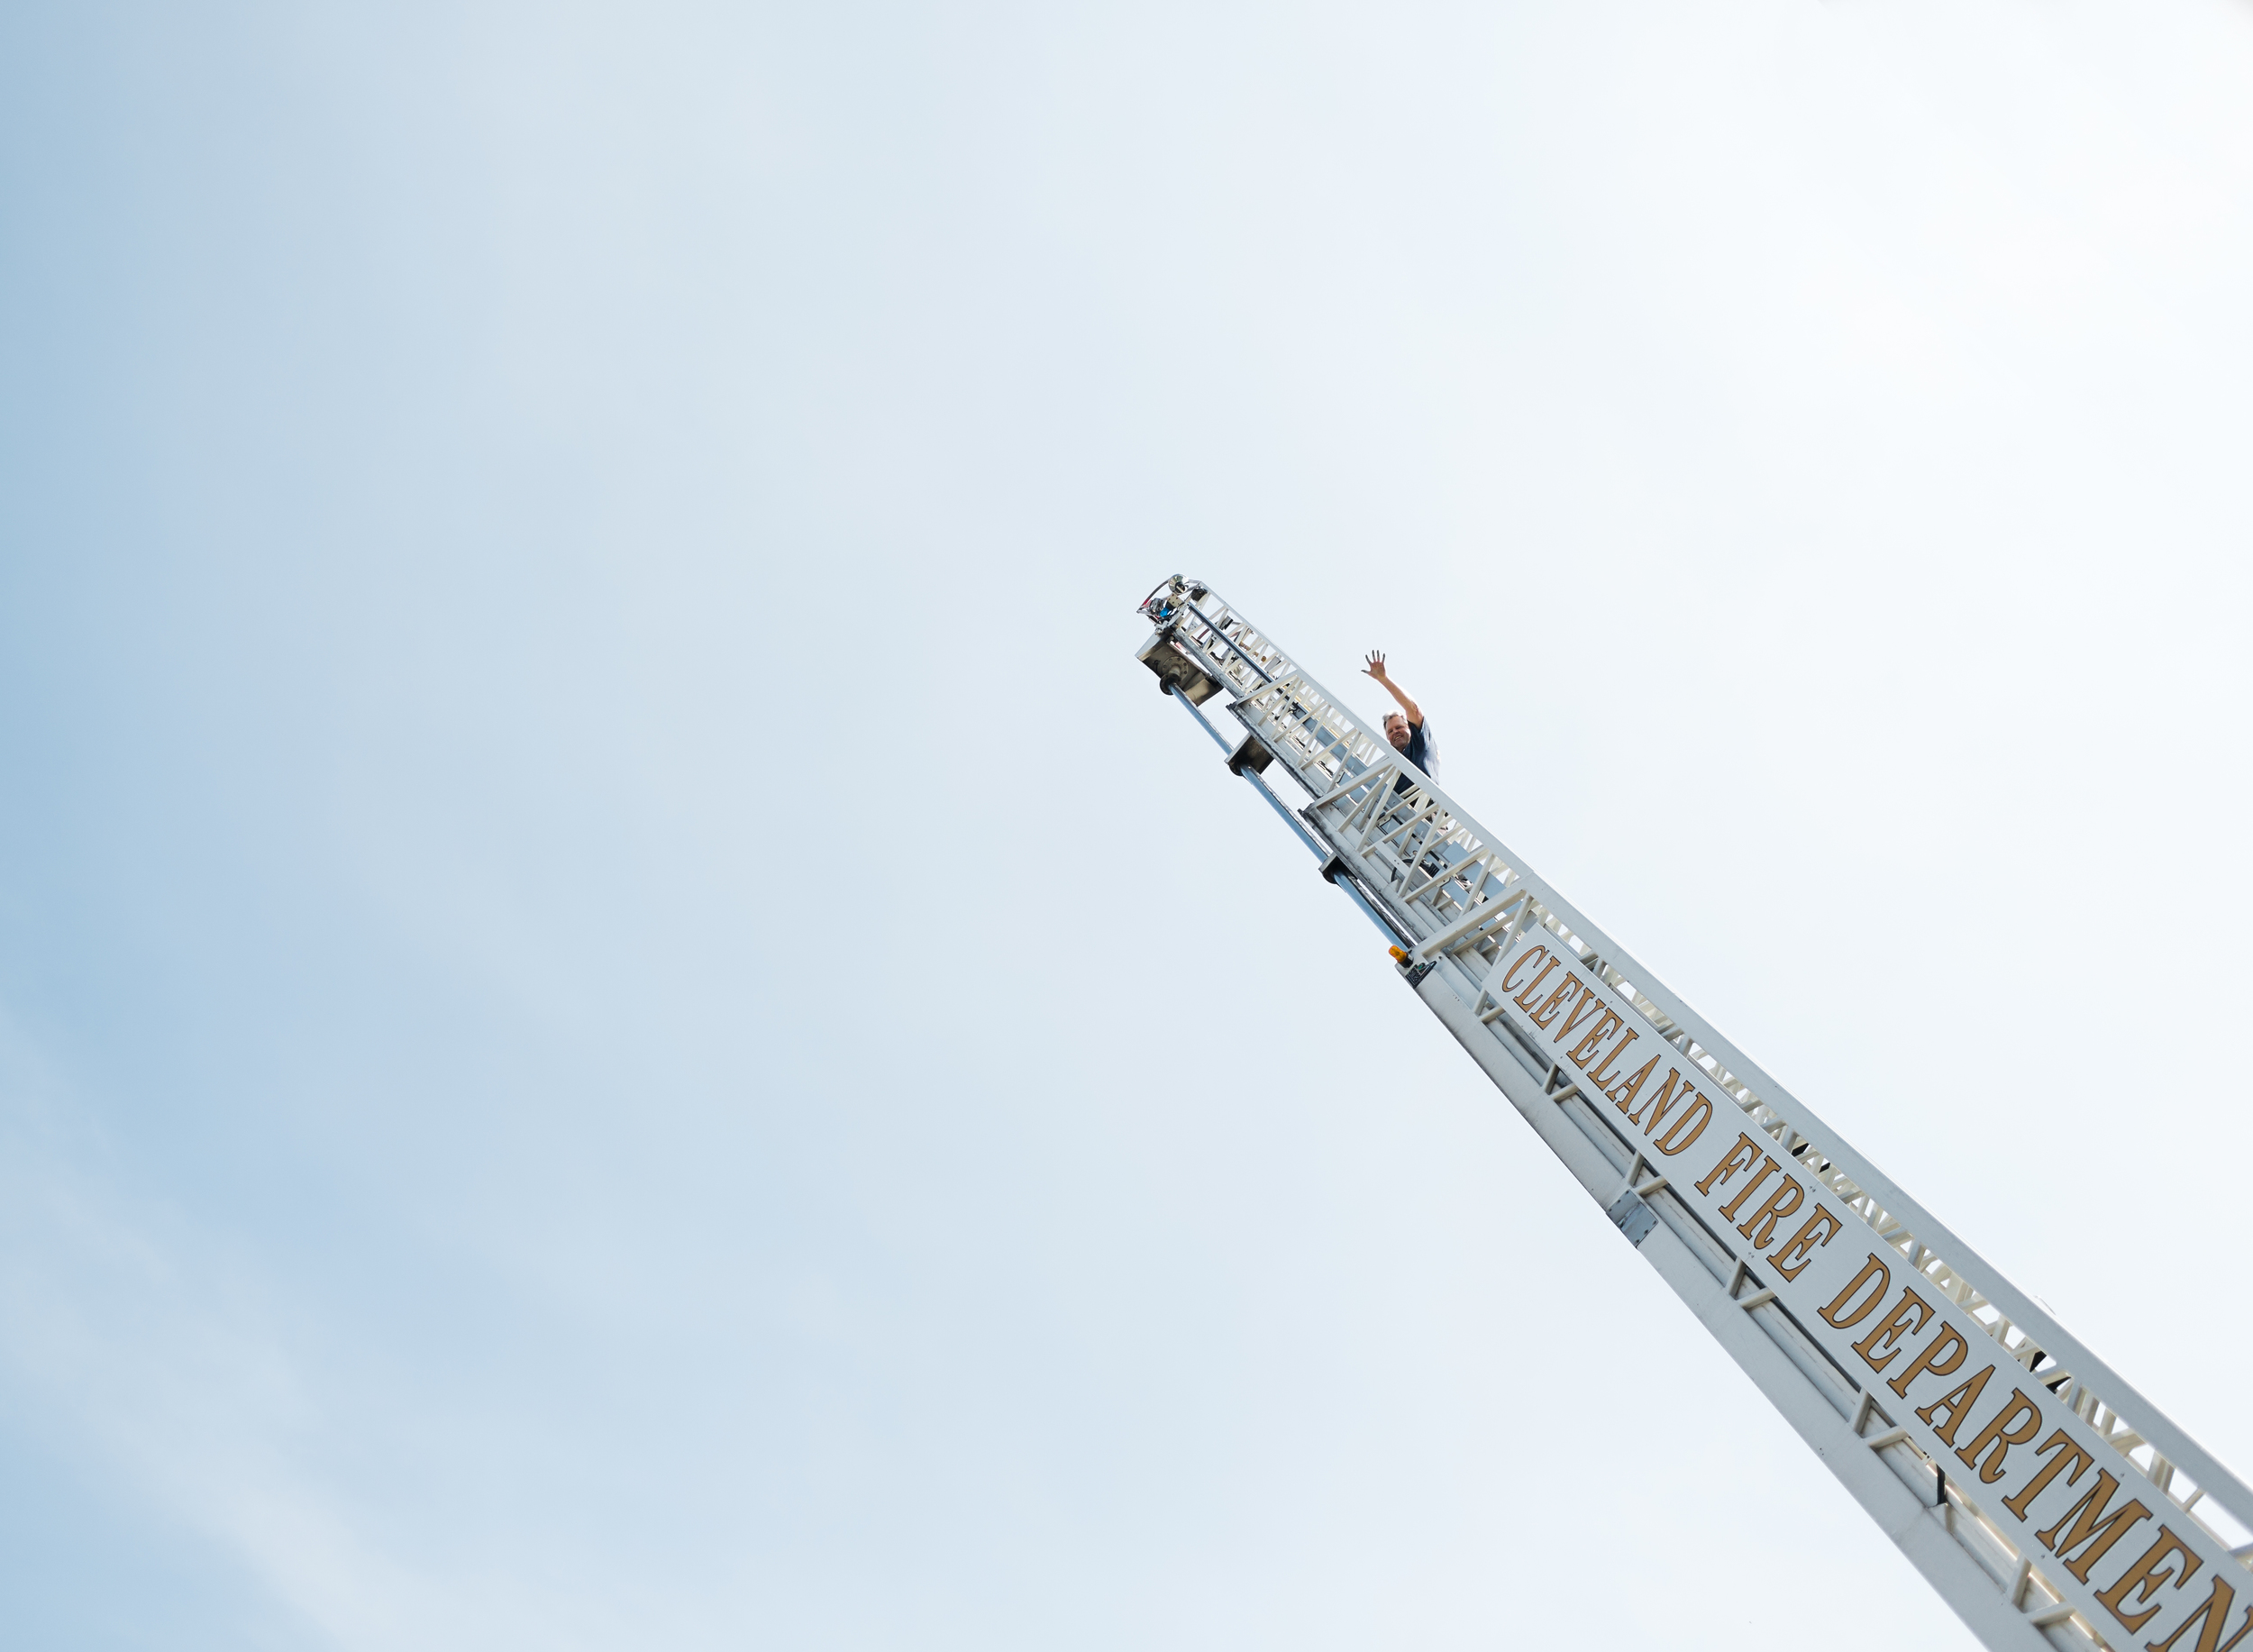 052013_FireStation_0046